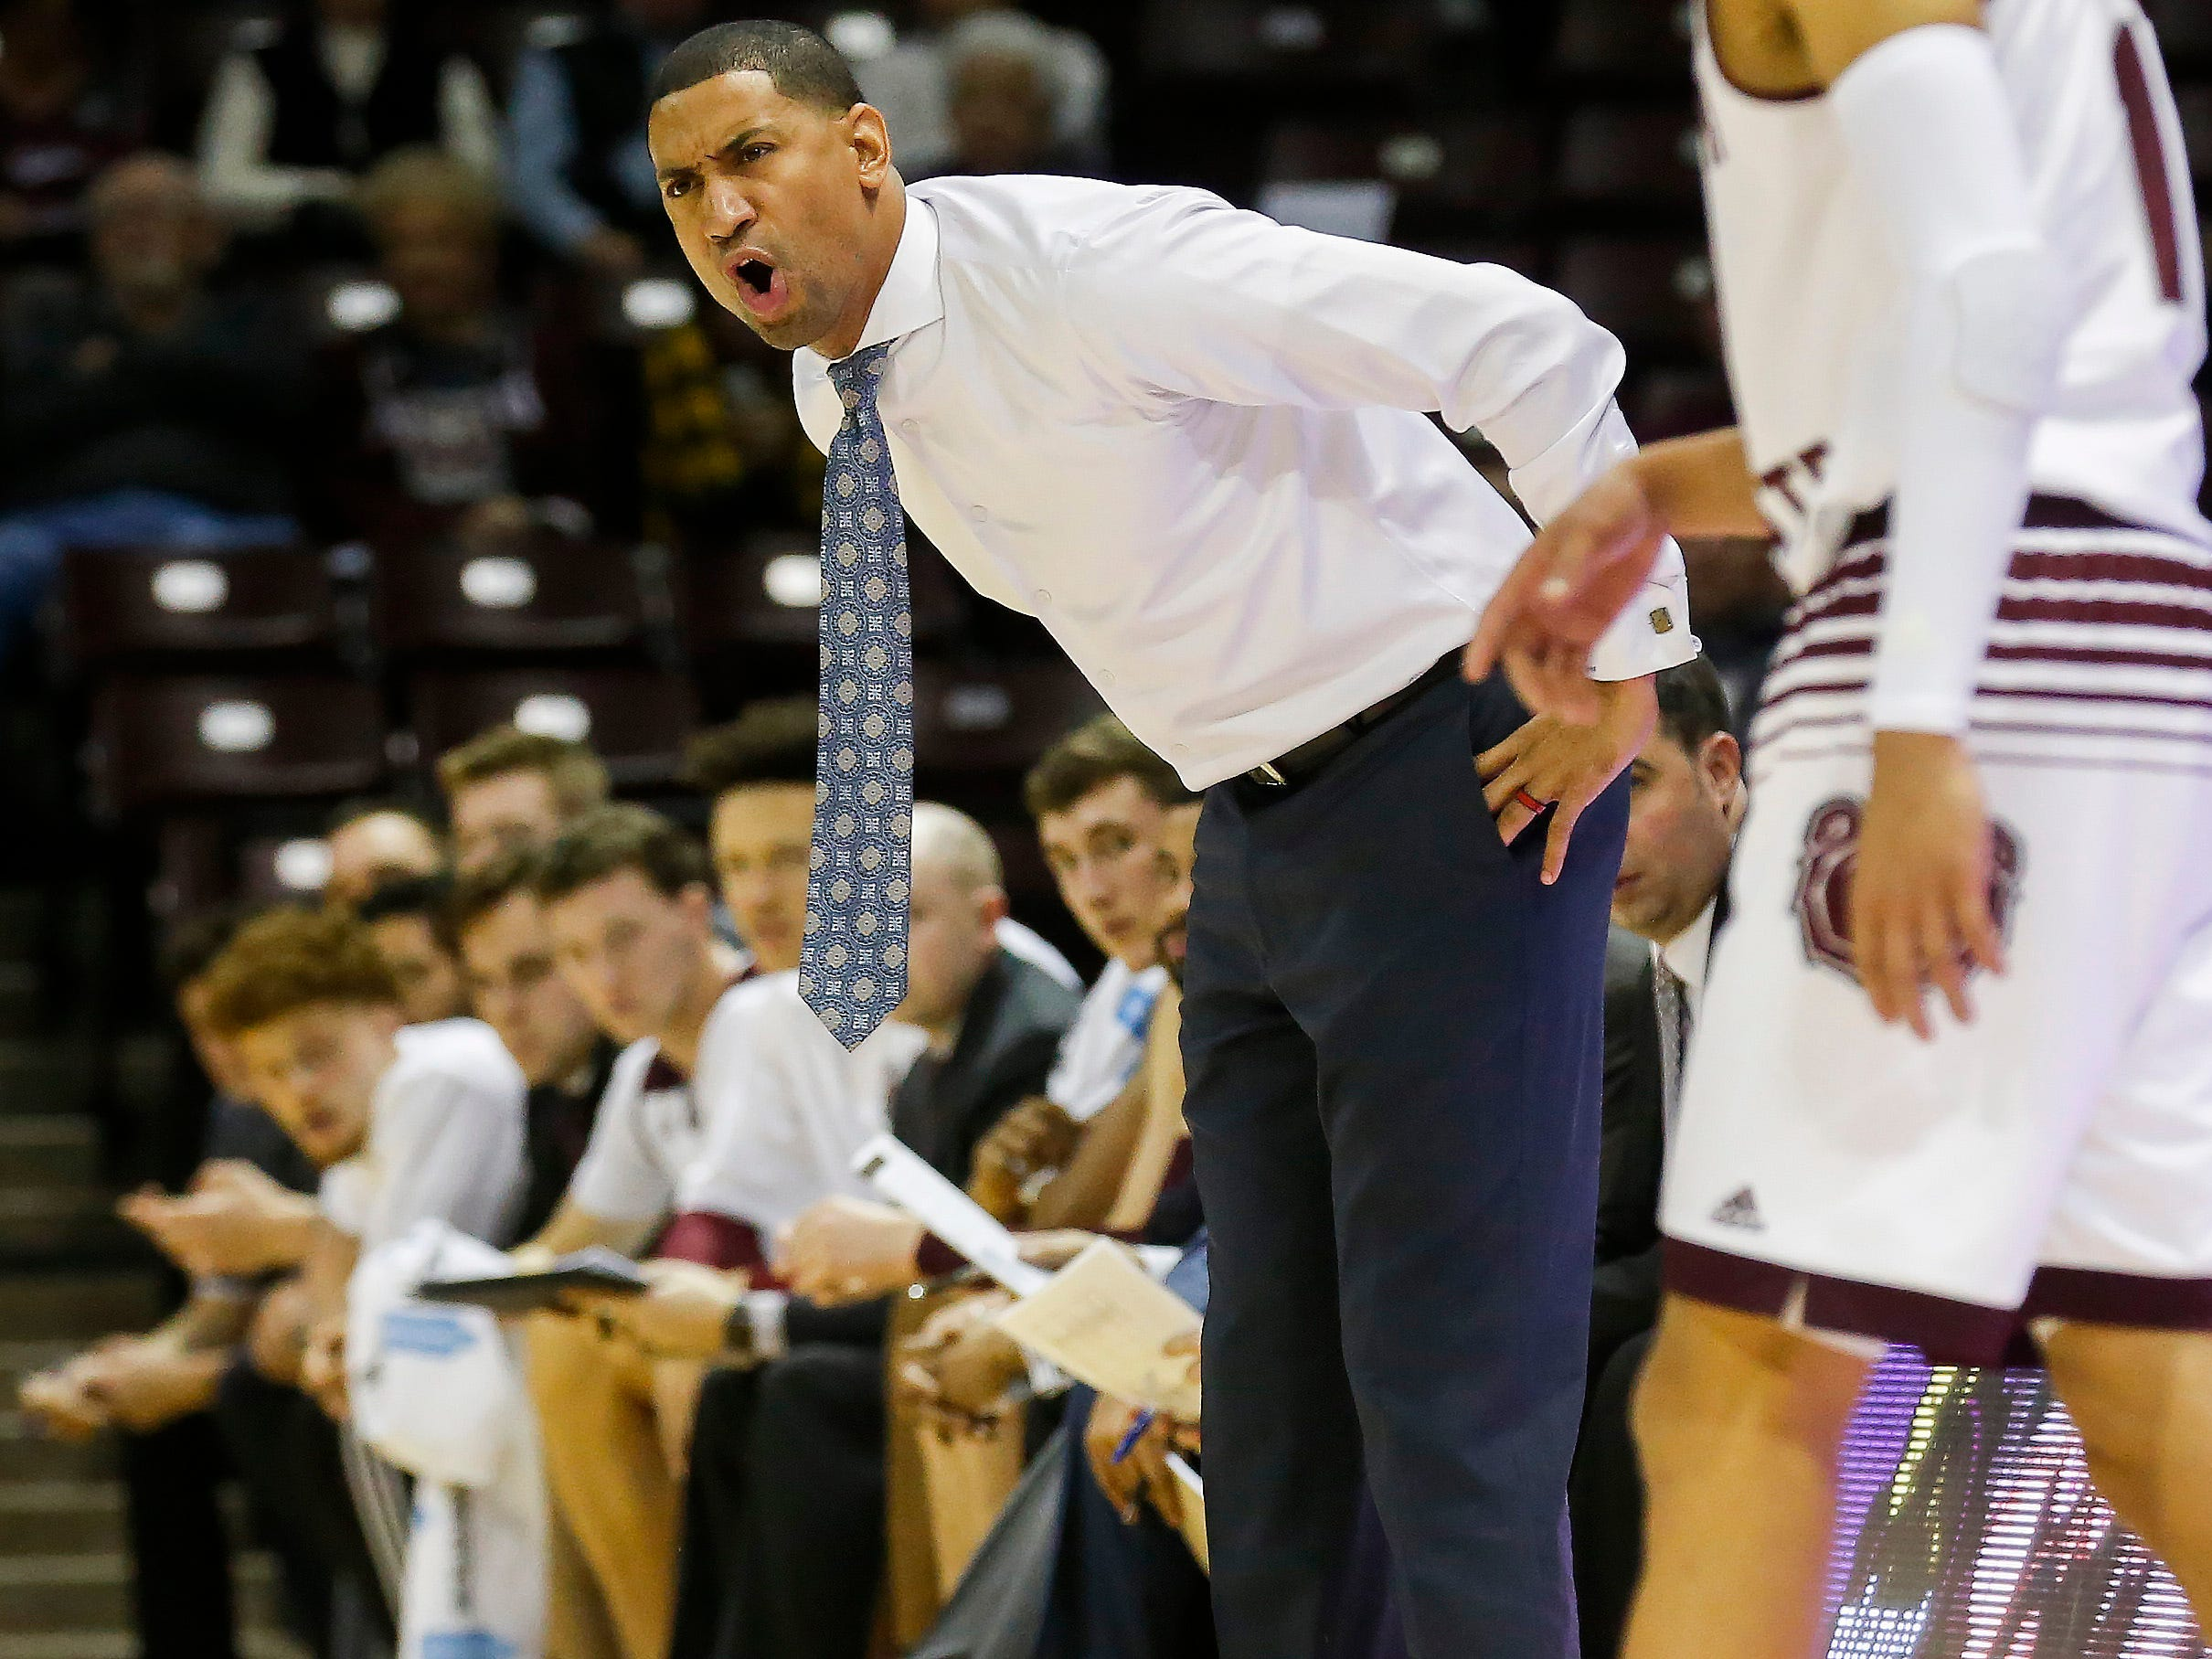 Missouri State University head coach Dana Ford yells during the Bears game against Valparaiso at JQH Arena on Saturday, Jan. 5, 2018.